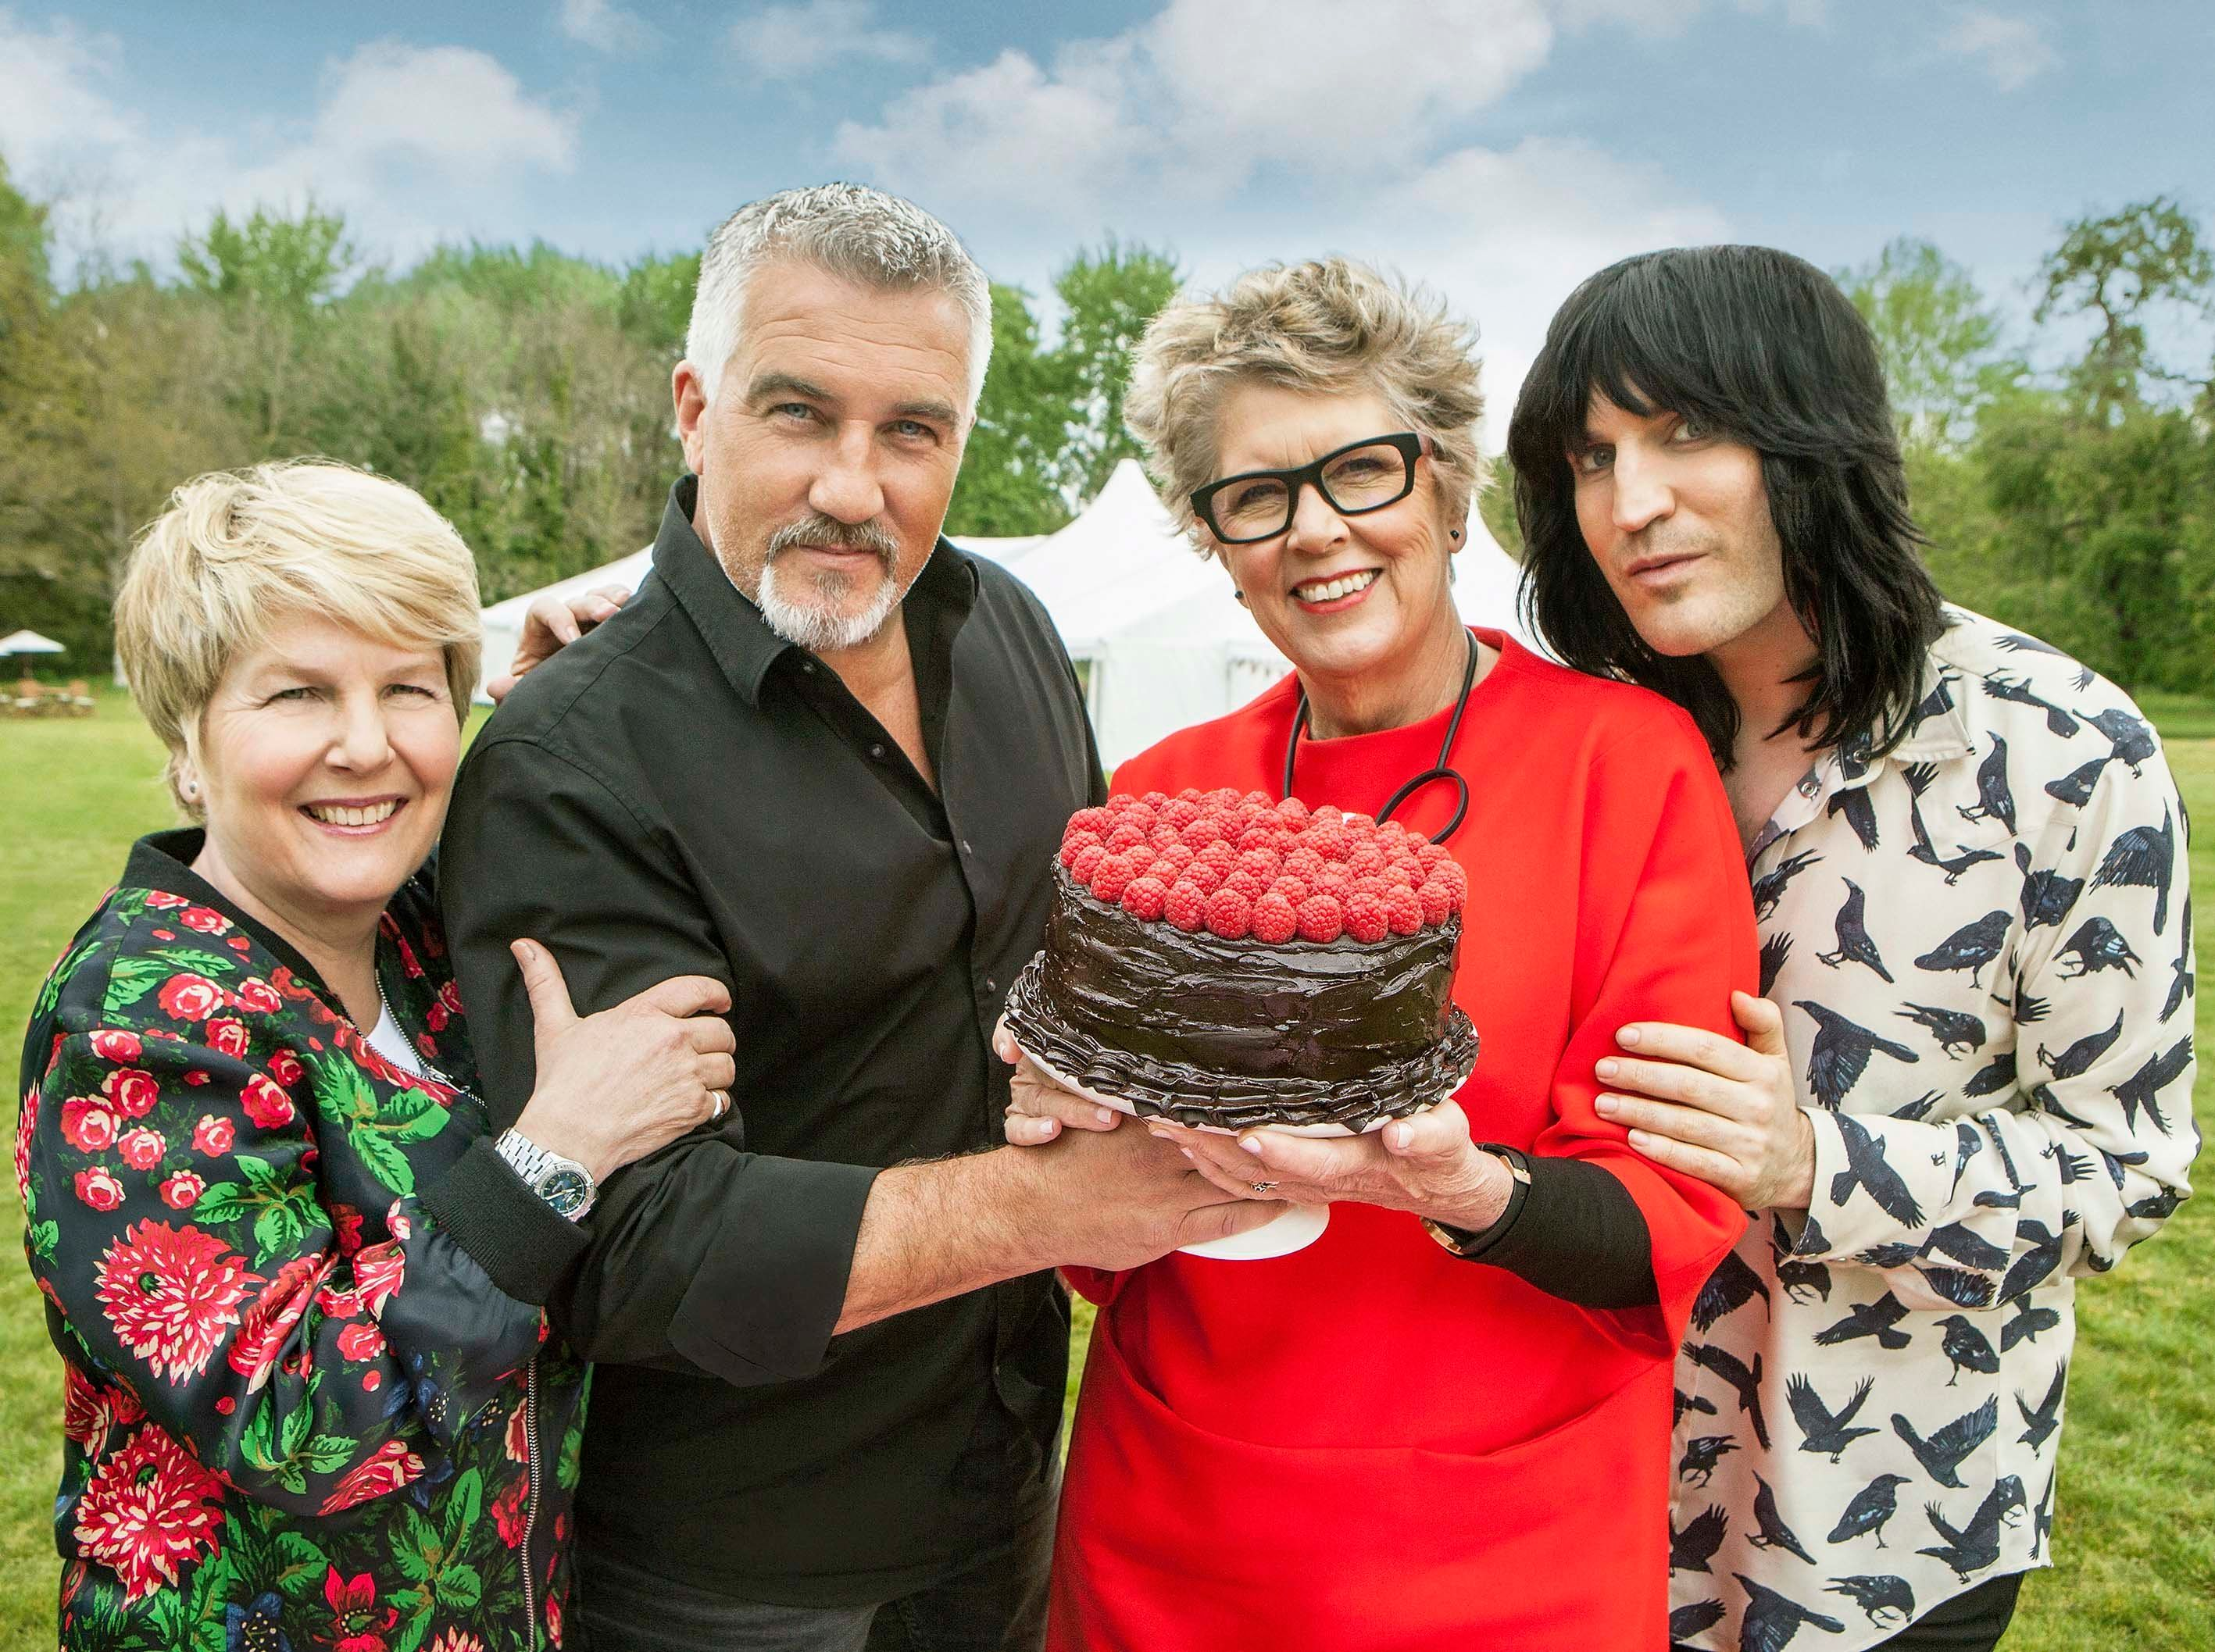 Channel 4 Responds To Claims 'Bake Off' Judges And Hosts Were Paid For Charity